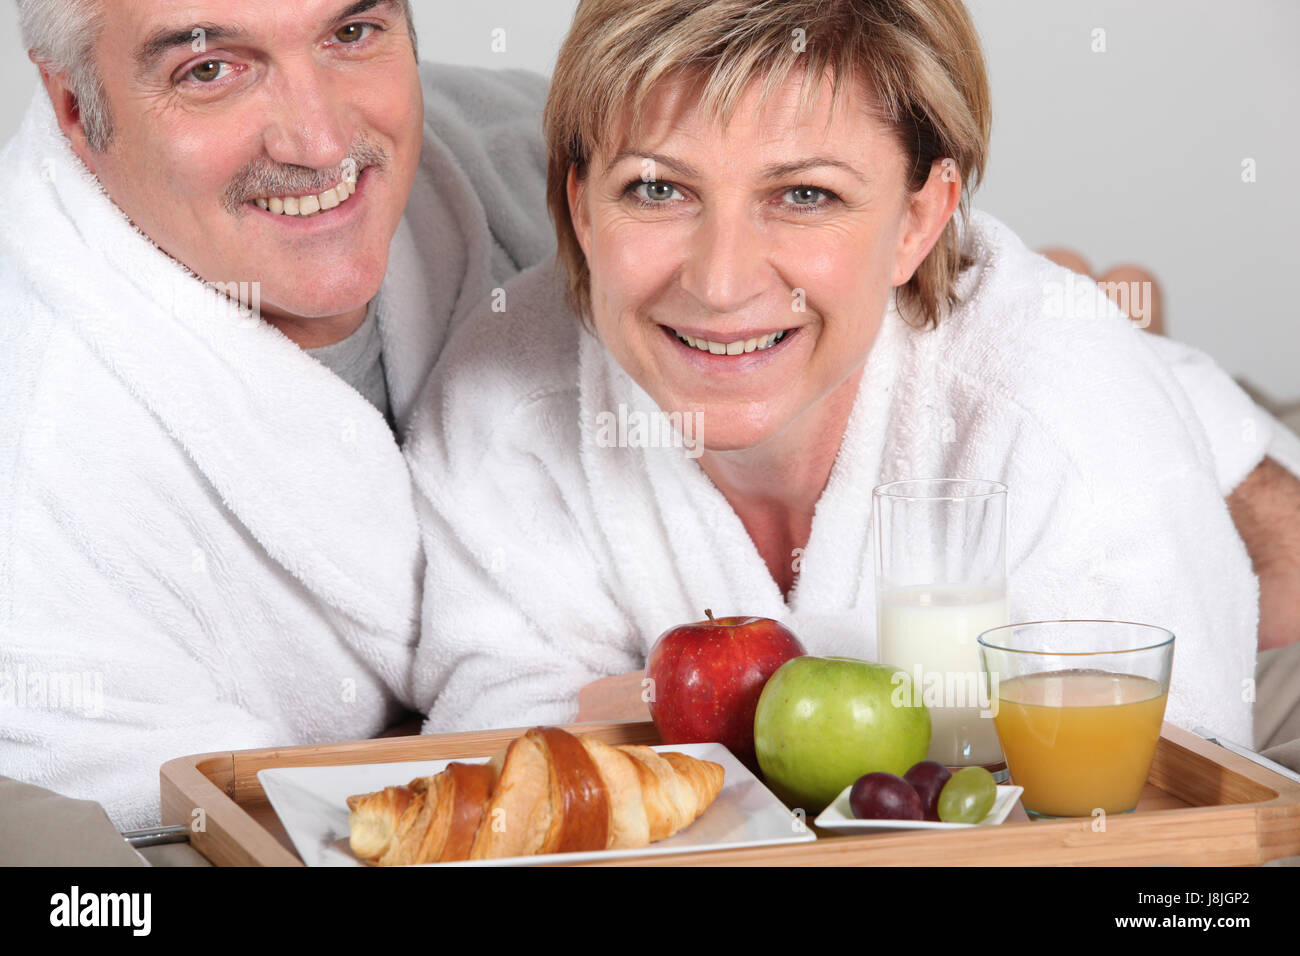 beautiful, beauteously, nice, bed, apples, apple, adult, bedroom, adults,  food,